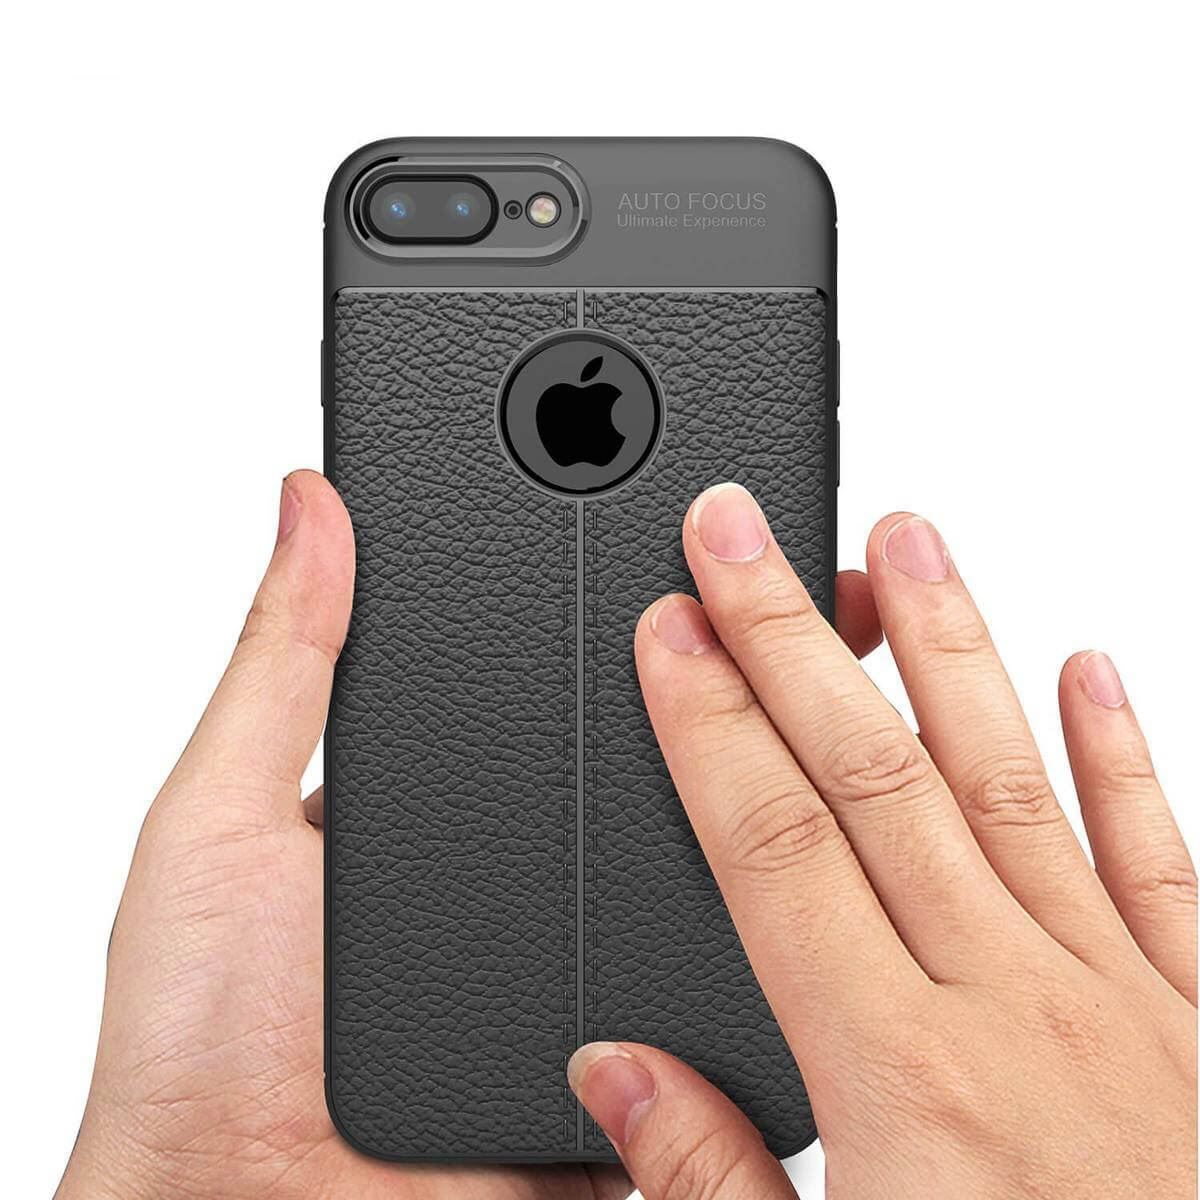 thumbnail 12 - Protective Leather Case For Apple iPhone Luxury Shockproof Pattern Soft TPU